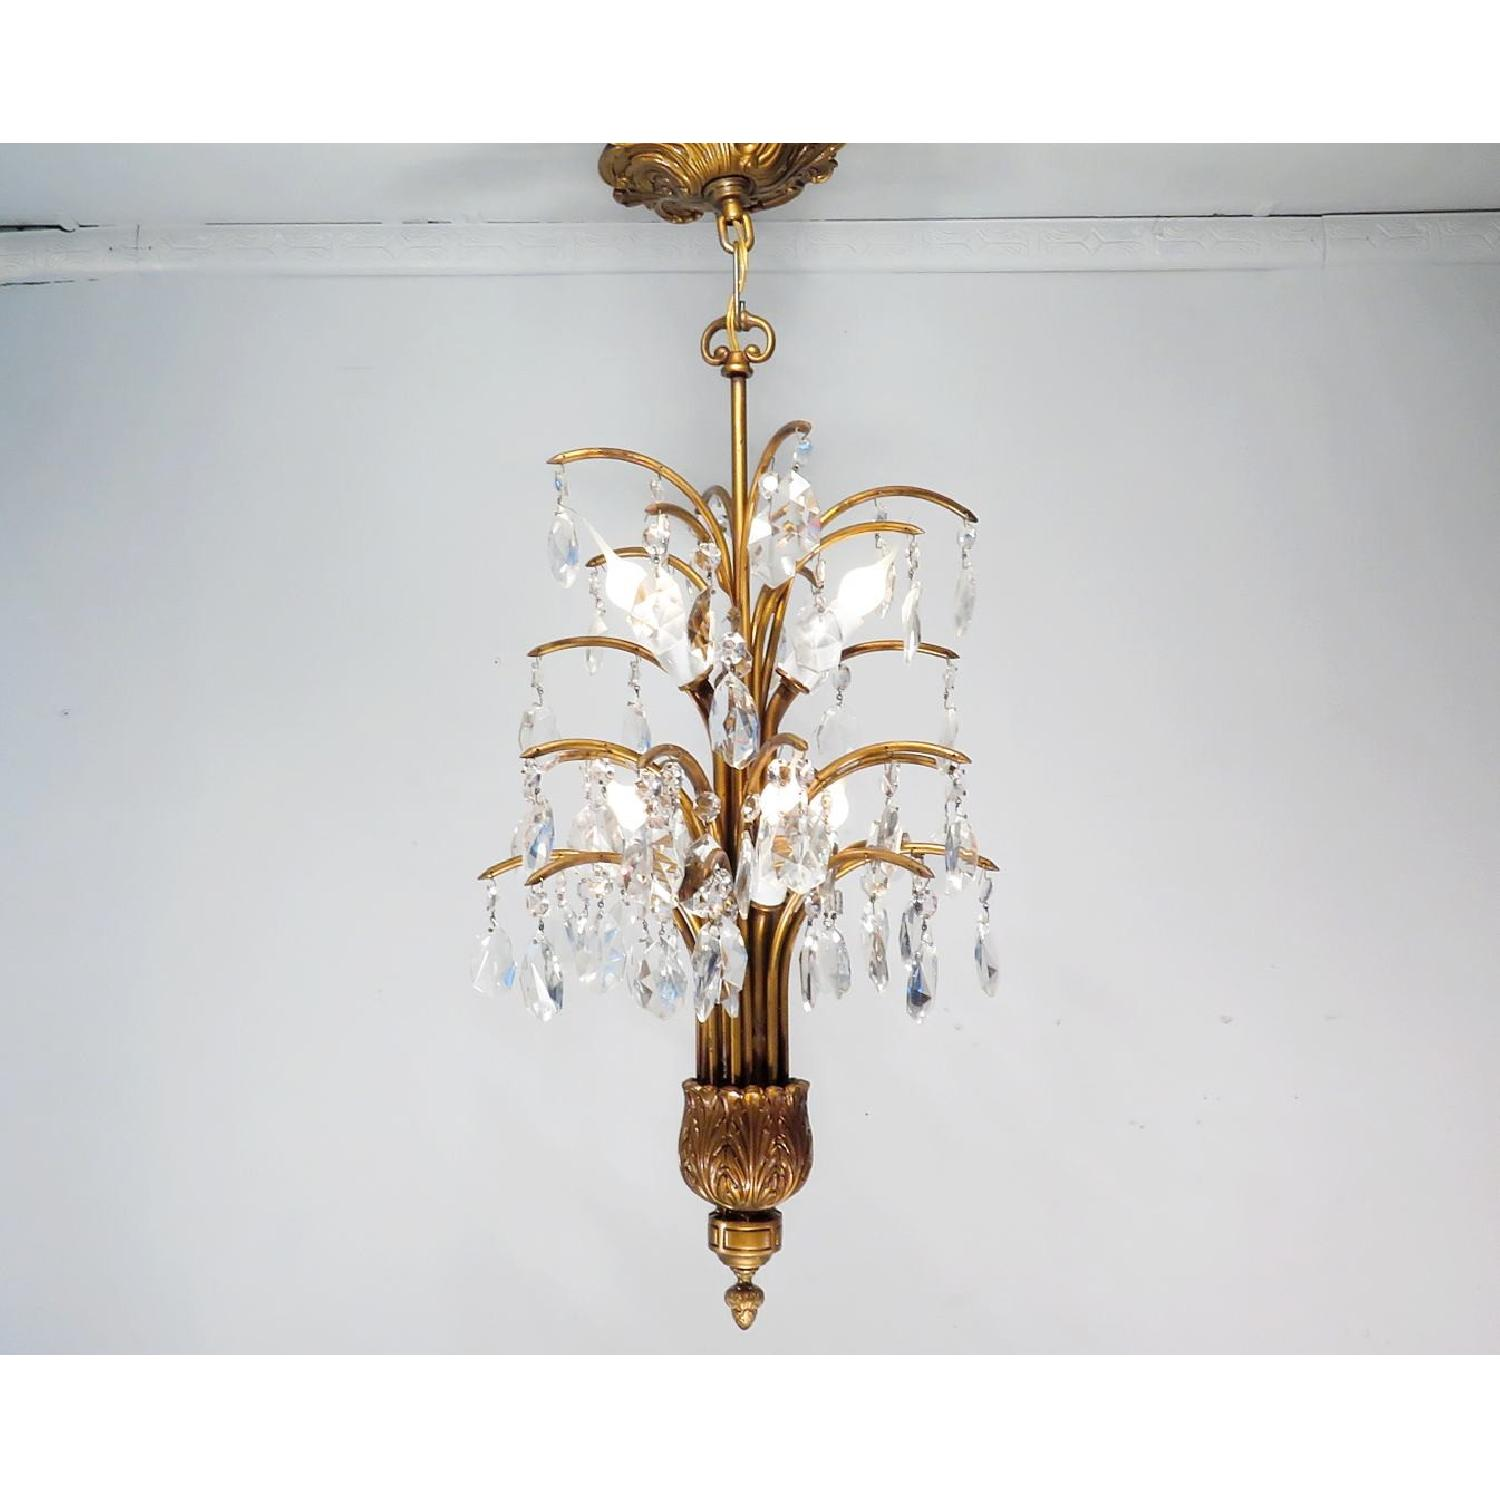 Antique Vintage Mid-Century Chandelier w/ Spray Crystals - 3 Available - image-1